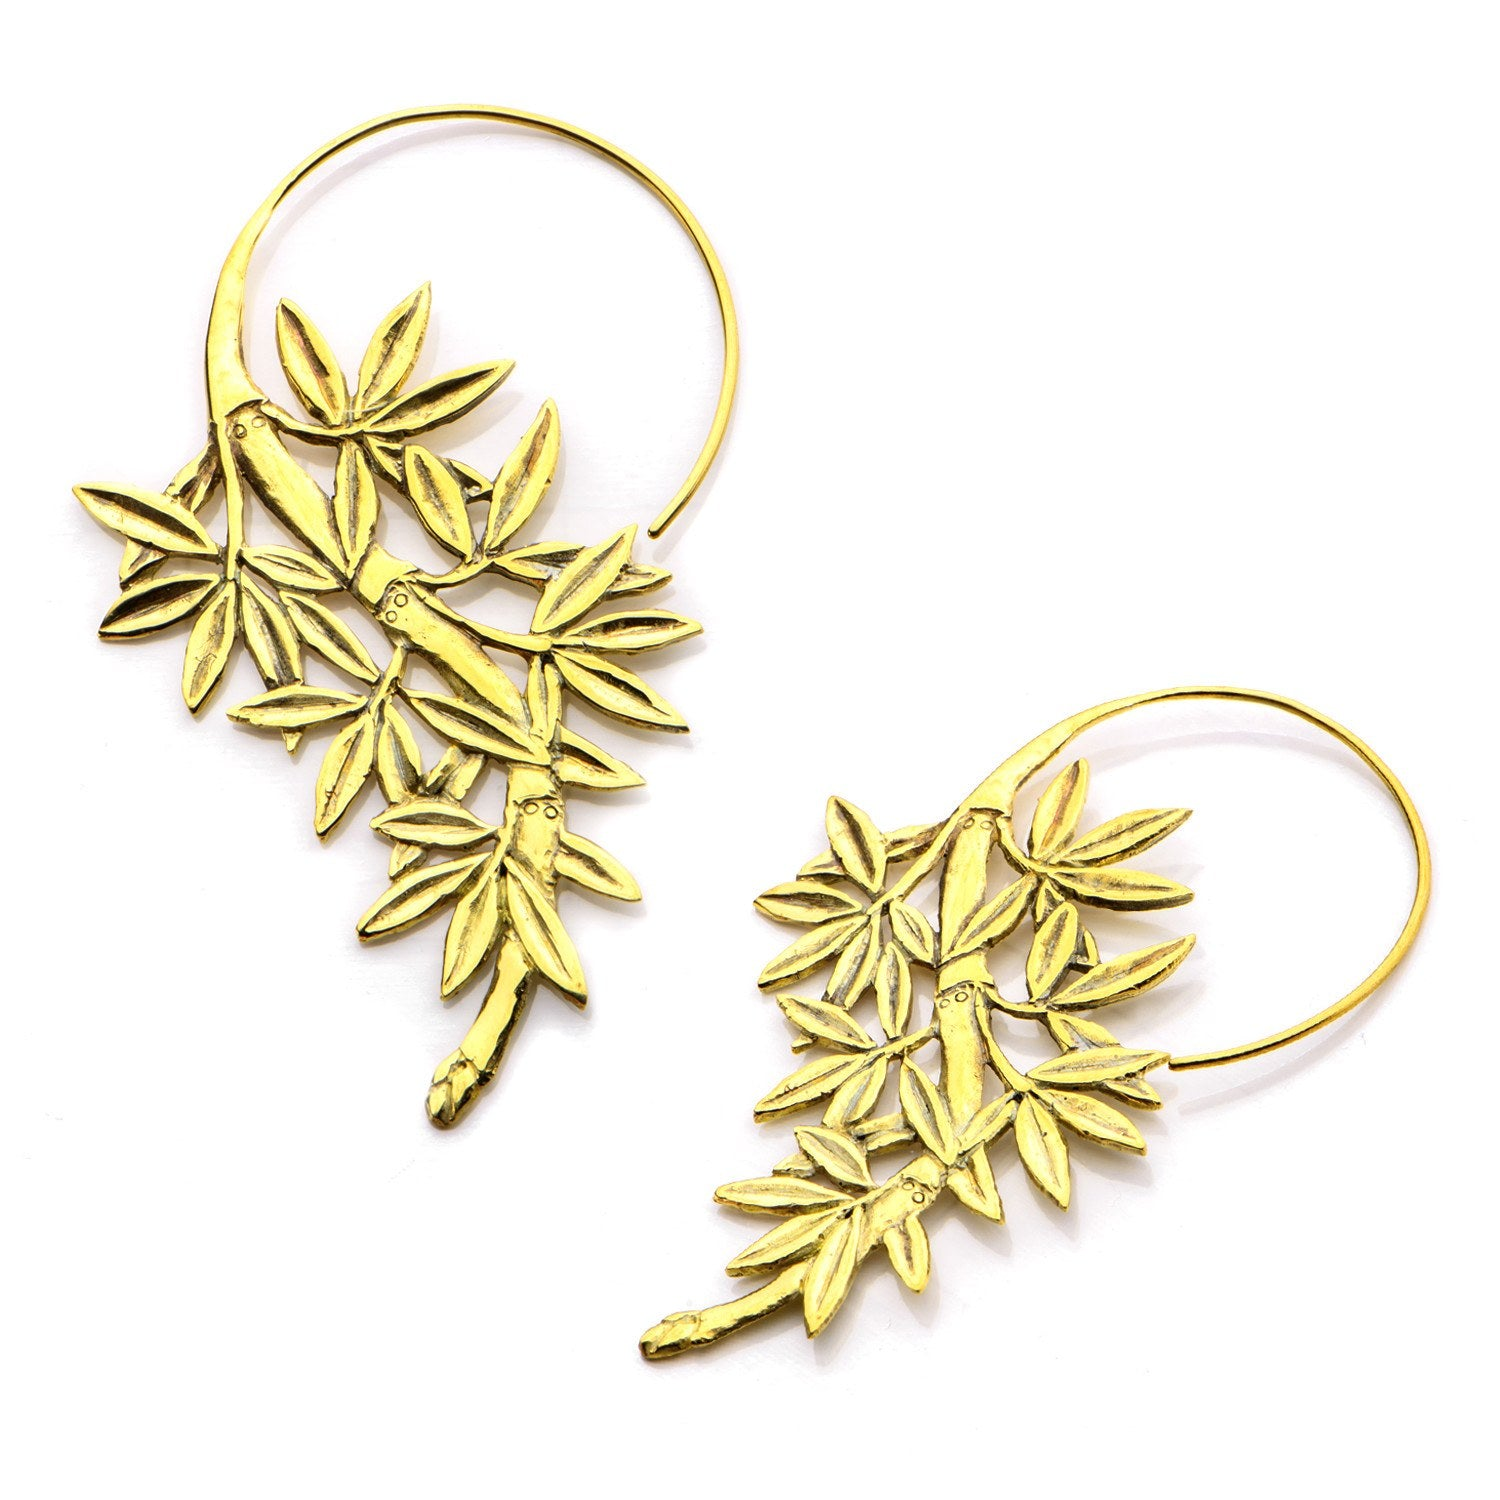 18g Lefi Brass Earrings